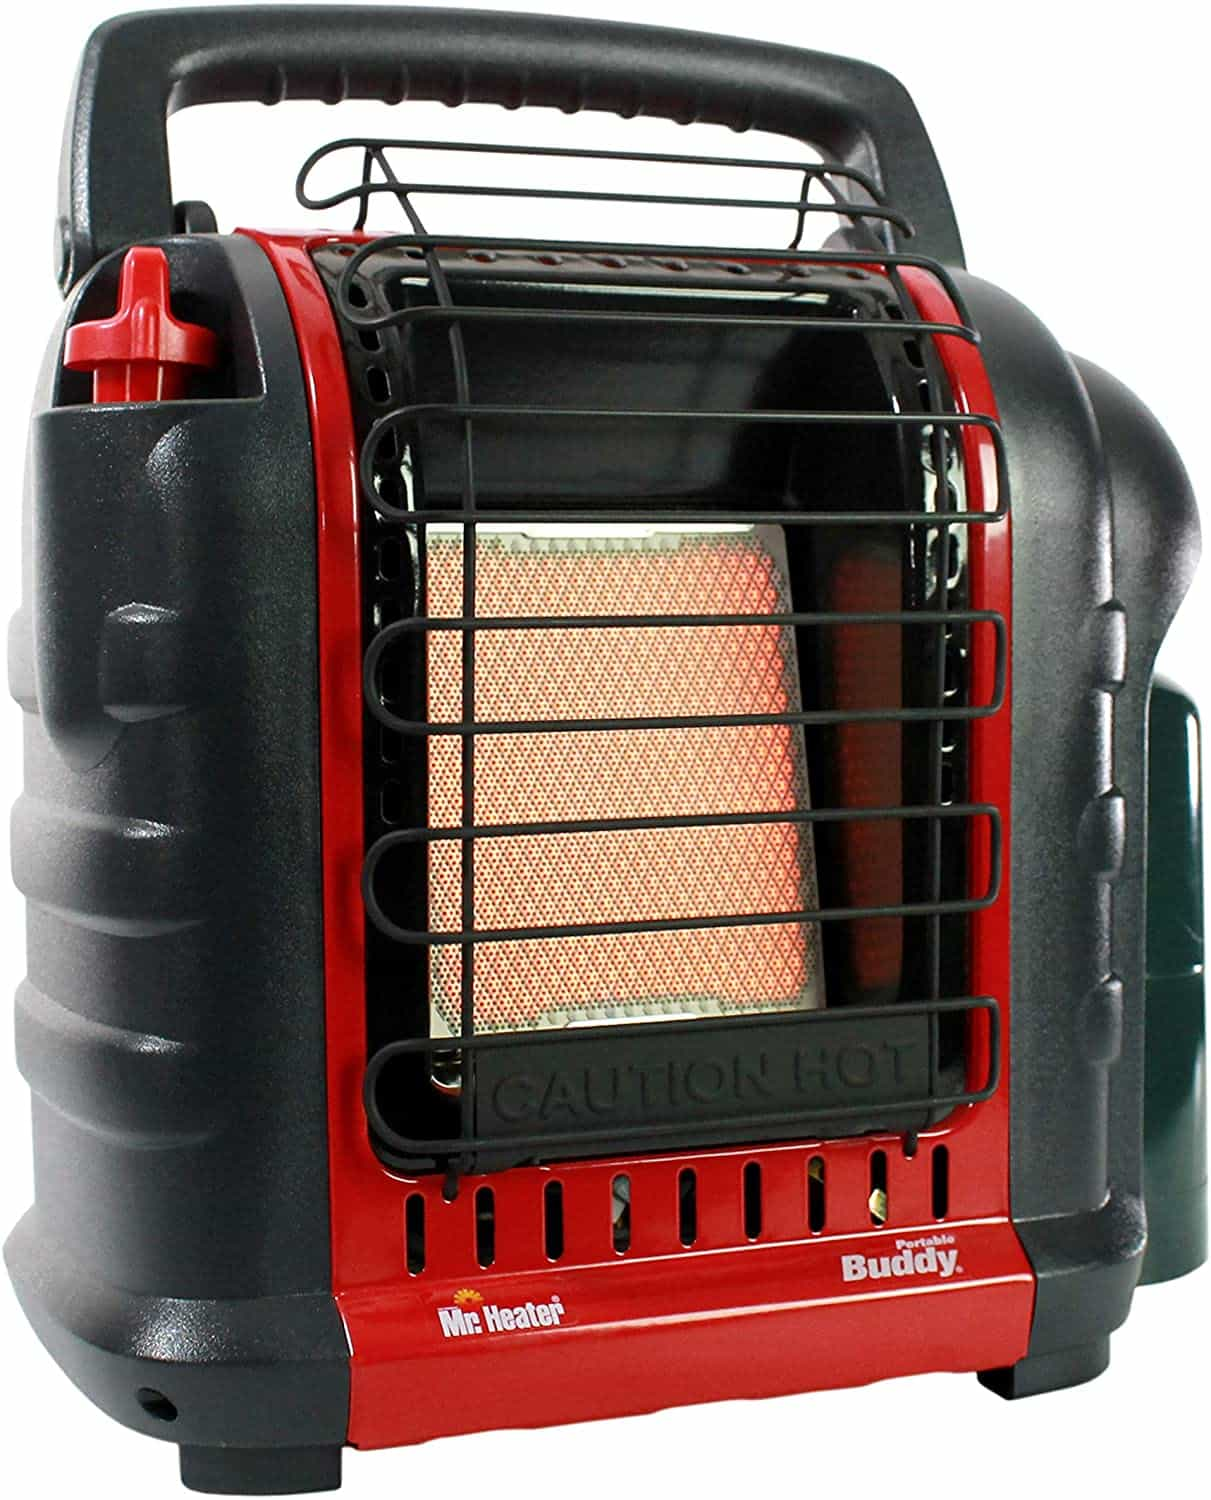 Mr. Heater MH9BX Portable Low Energy Radiant Heater